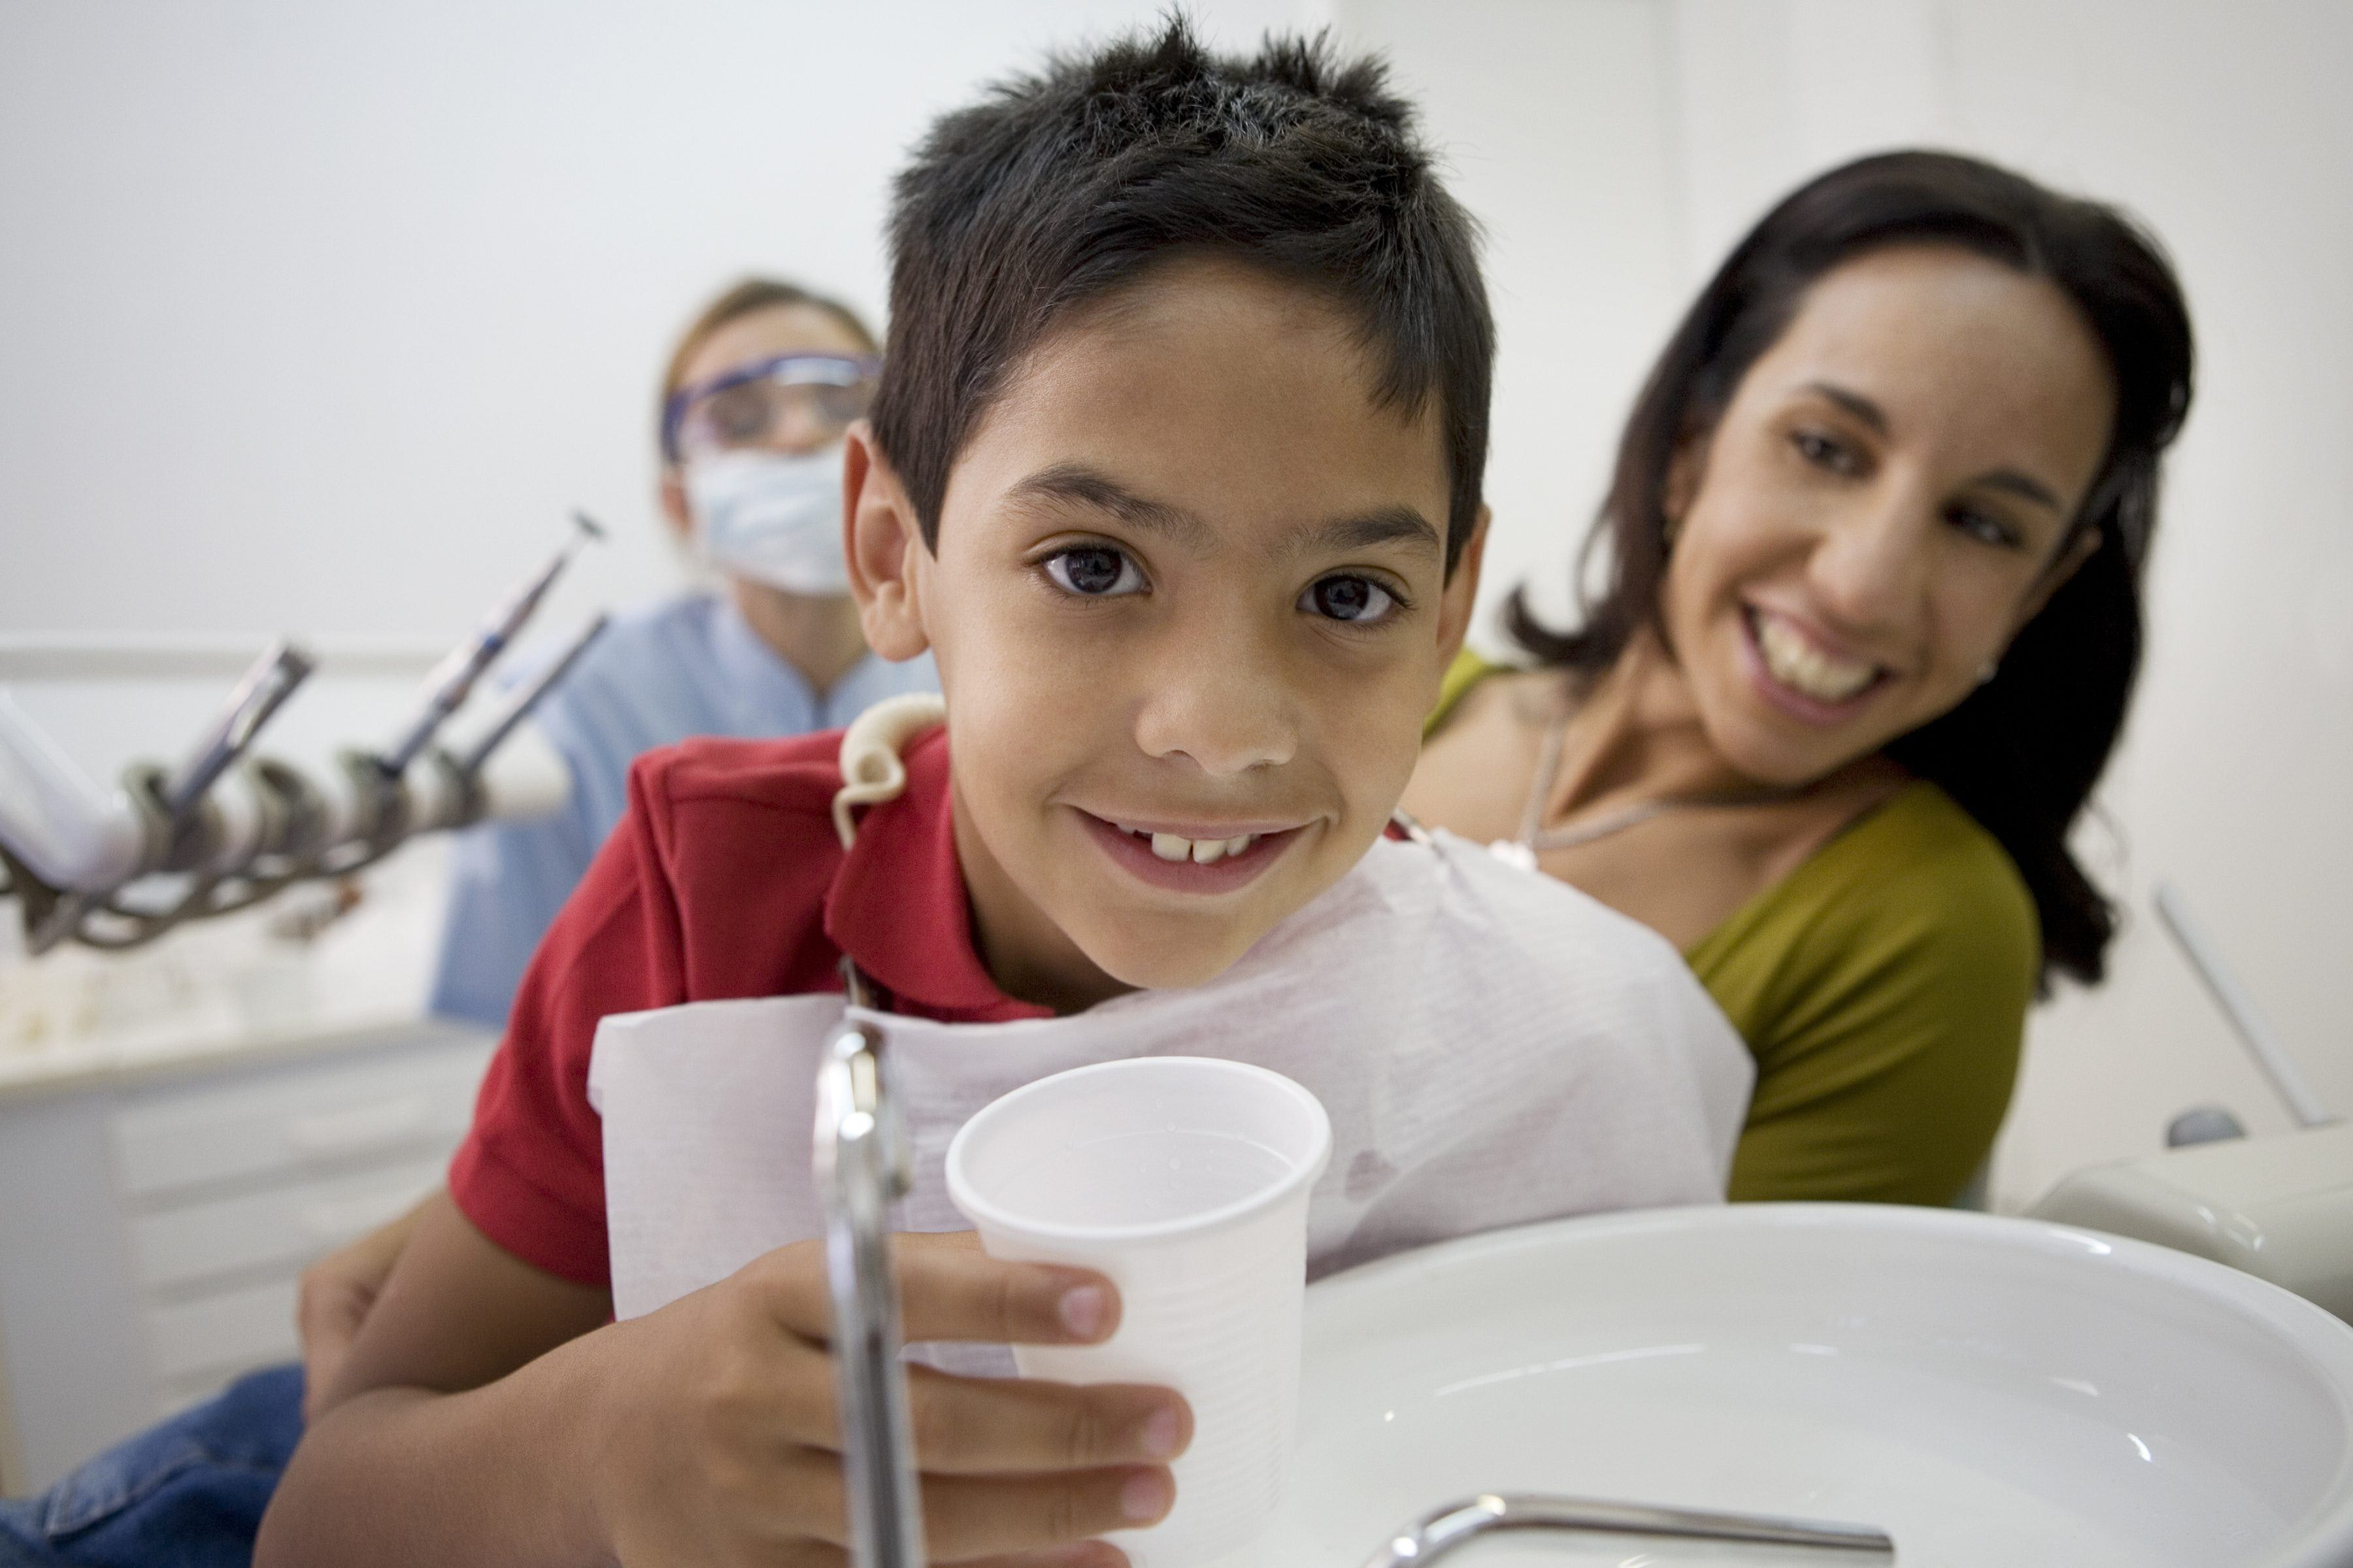 Boy rinsing after dental appointment